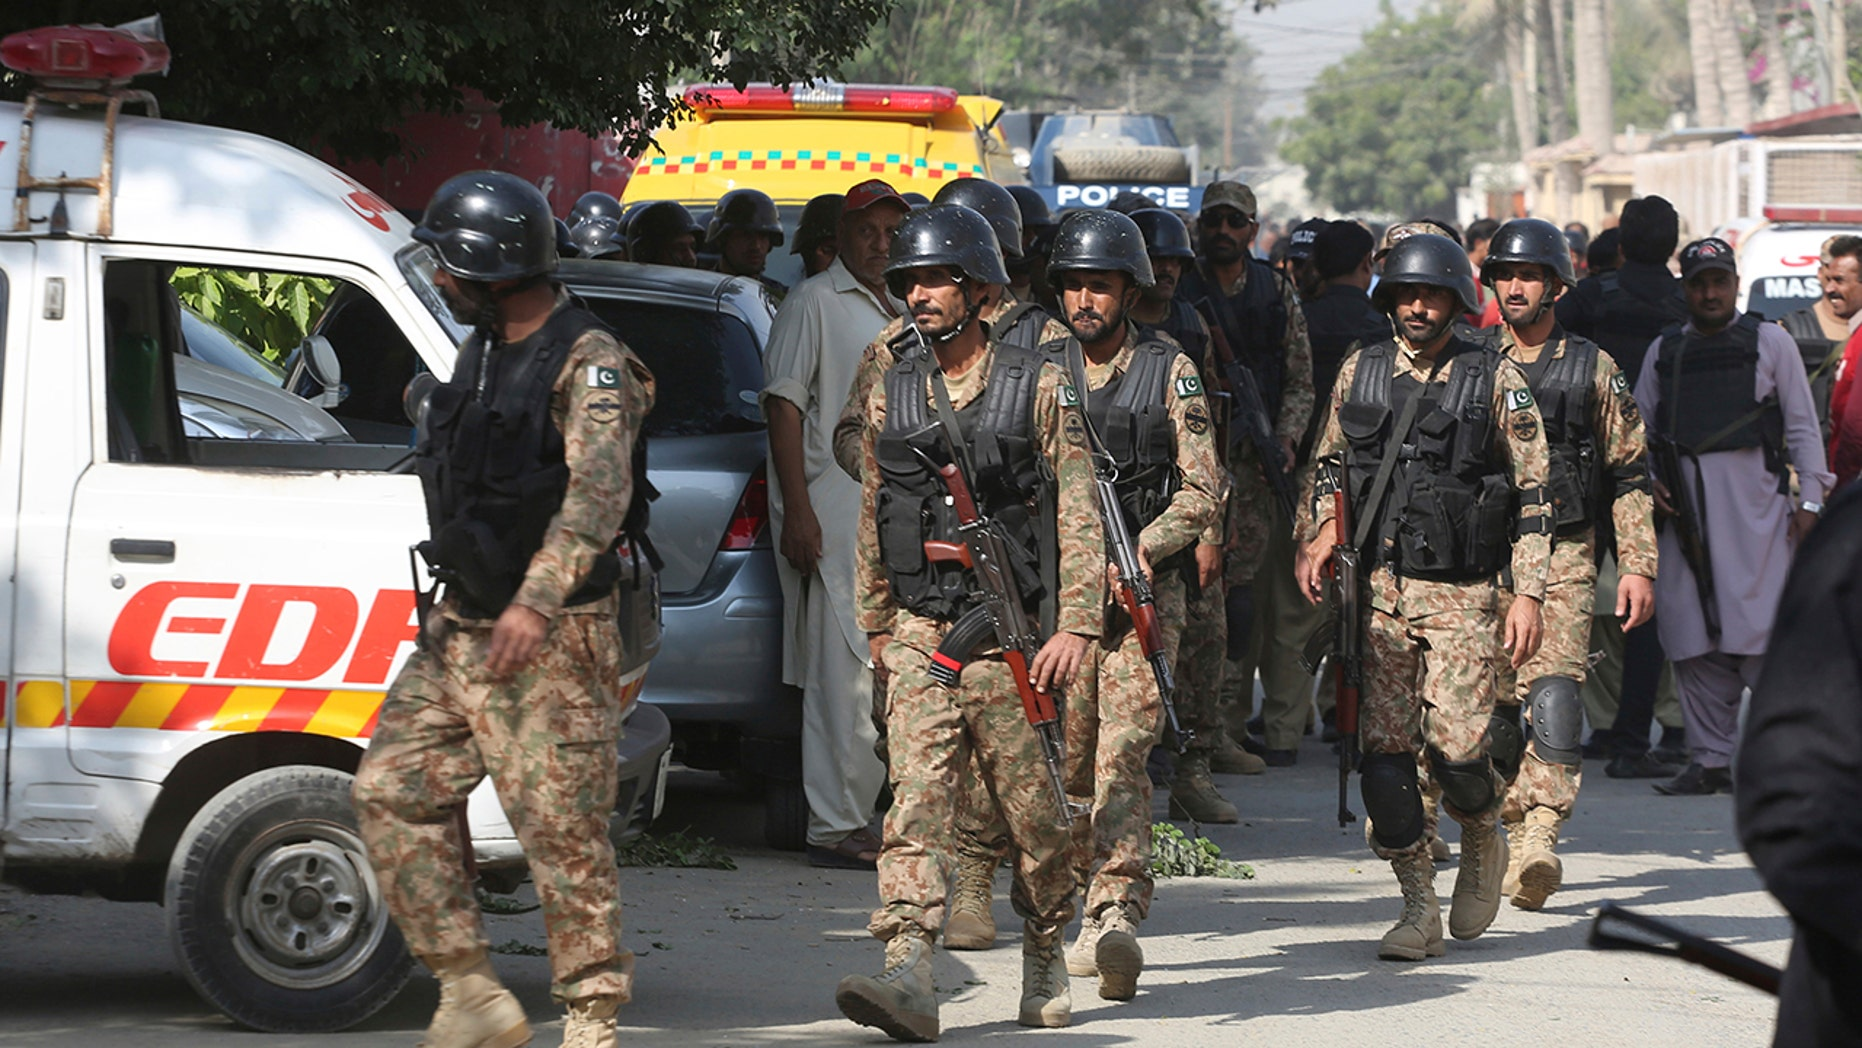 Pakistani security personnel arrive at the Chinese Consulate in Karachi, Pakistan, Friday, Nov. 23, 2018. (AP Photo/Shakil Adil)